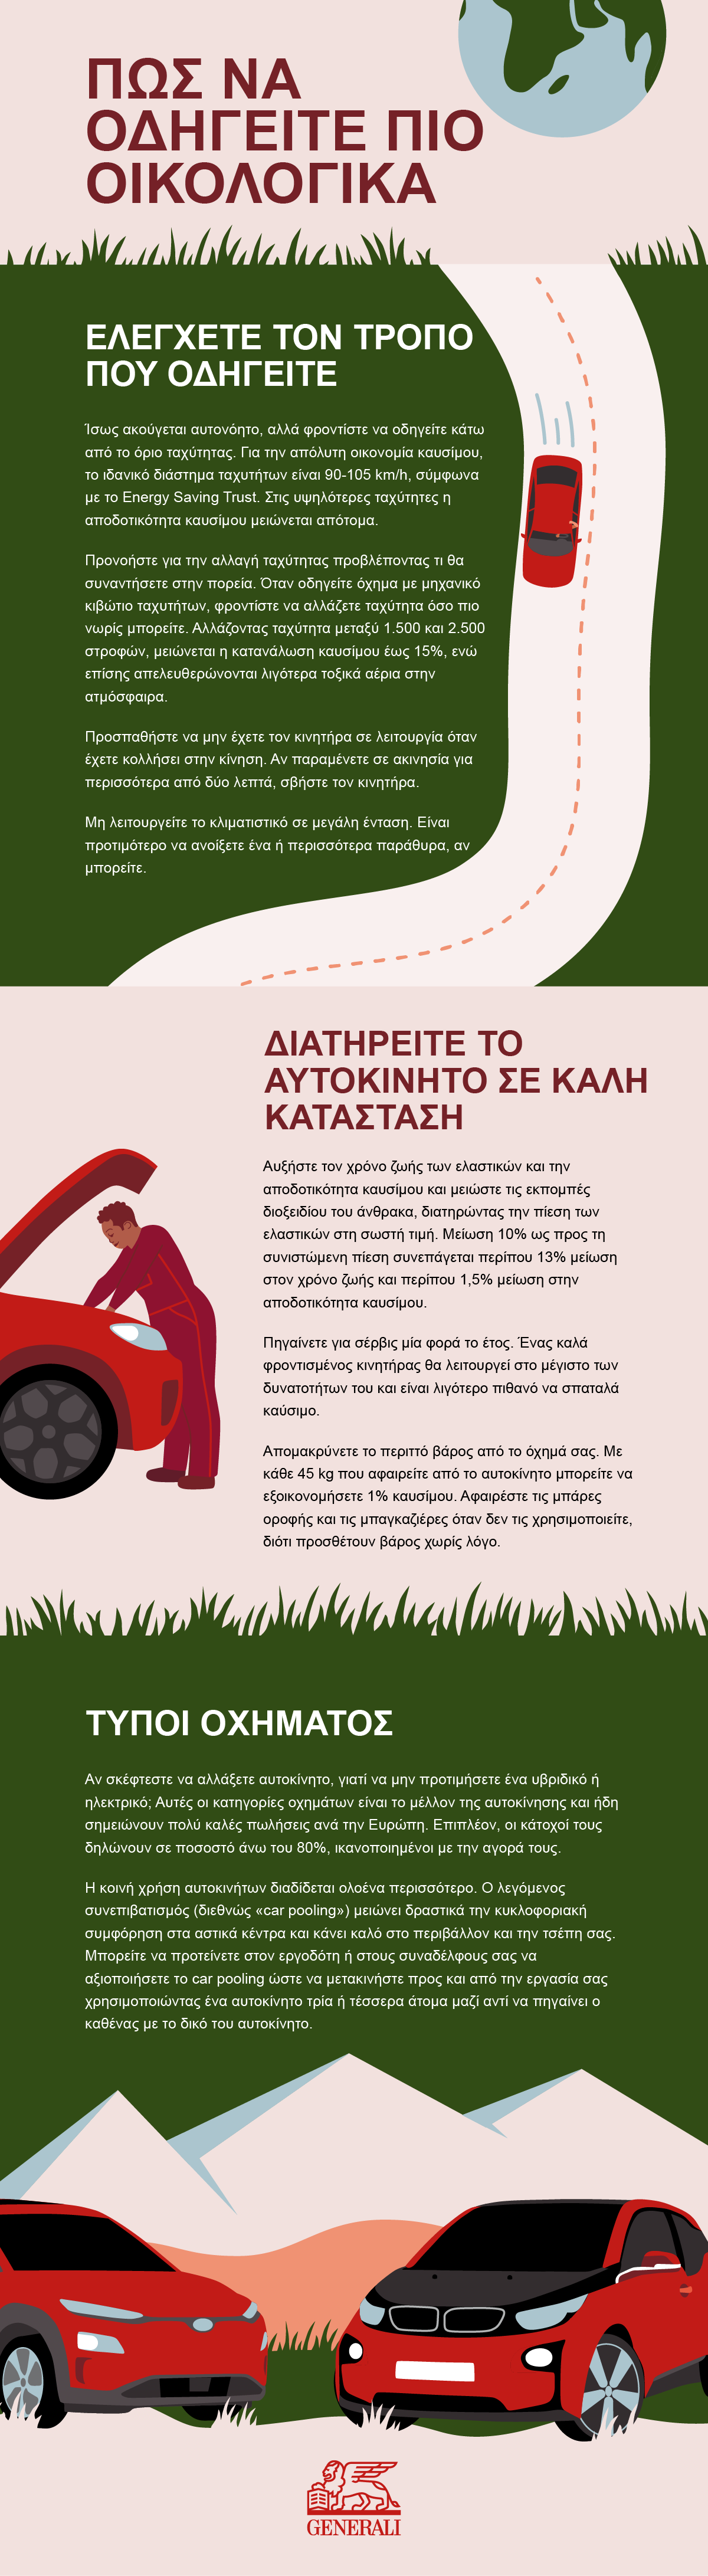 How to be a greener driver_infographic_09.09.21-Greece (2).png